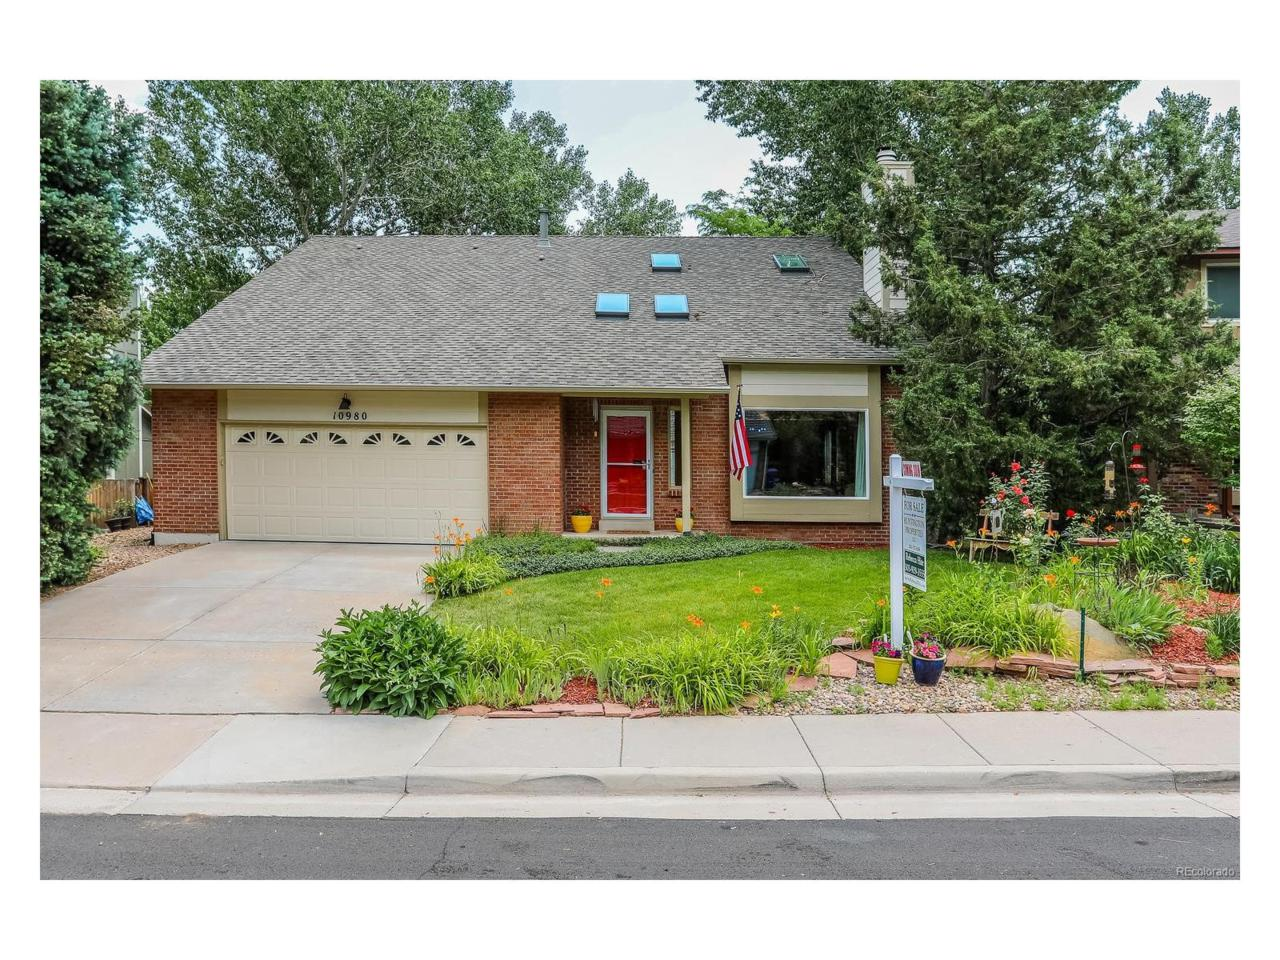 10980 E Maplewood Drive, Englewood, CO 80111 (MLS #7604266) :: 8z Real Estate